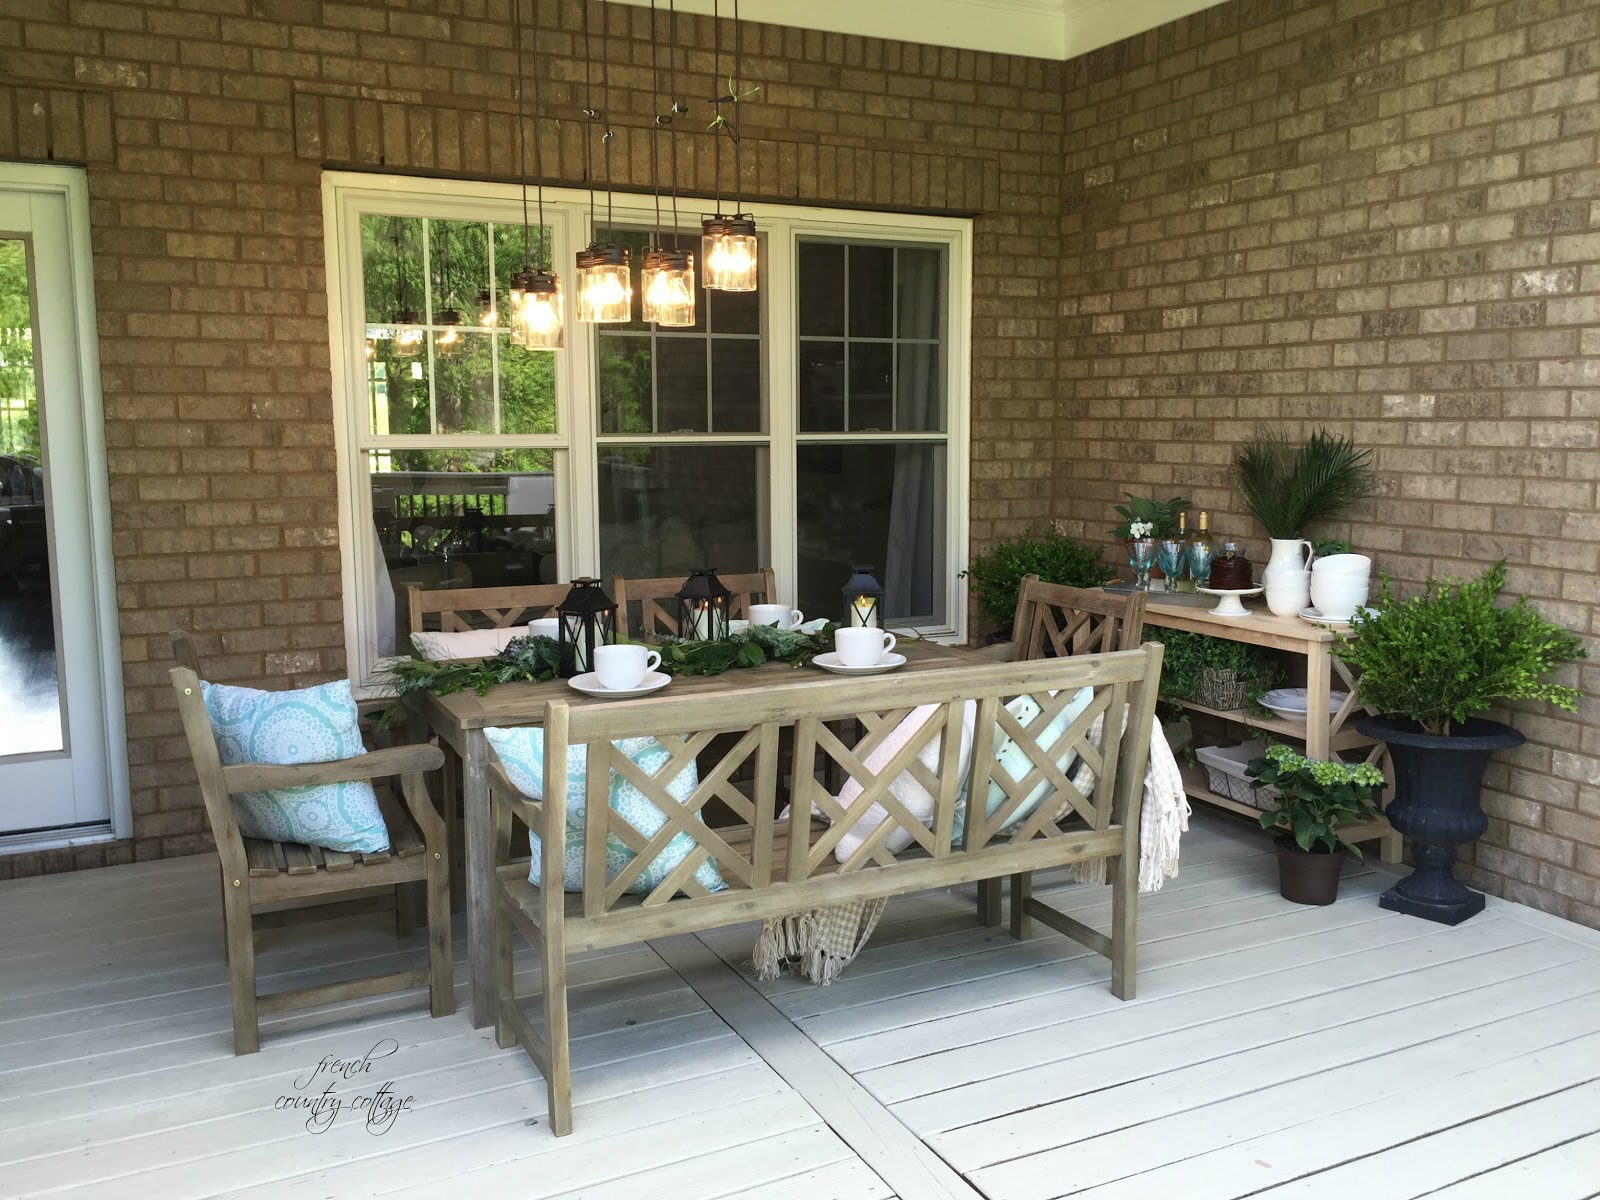 Good Wood bench at outdoor dining table area